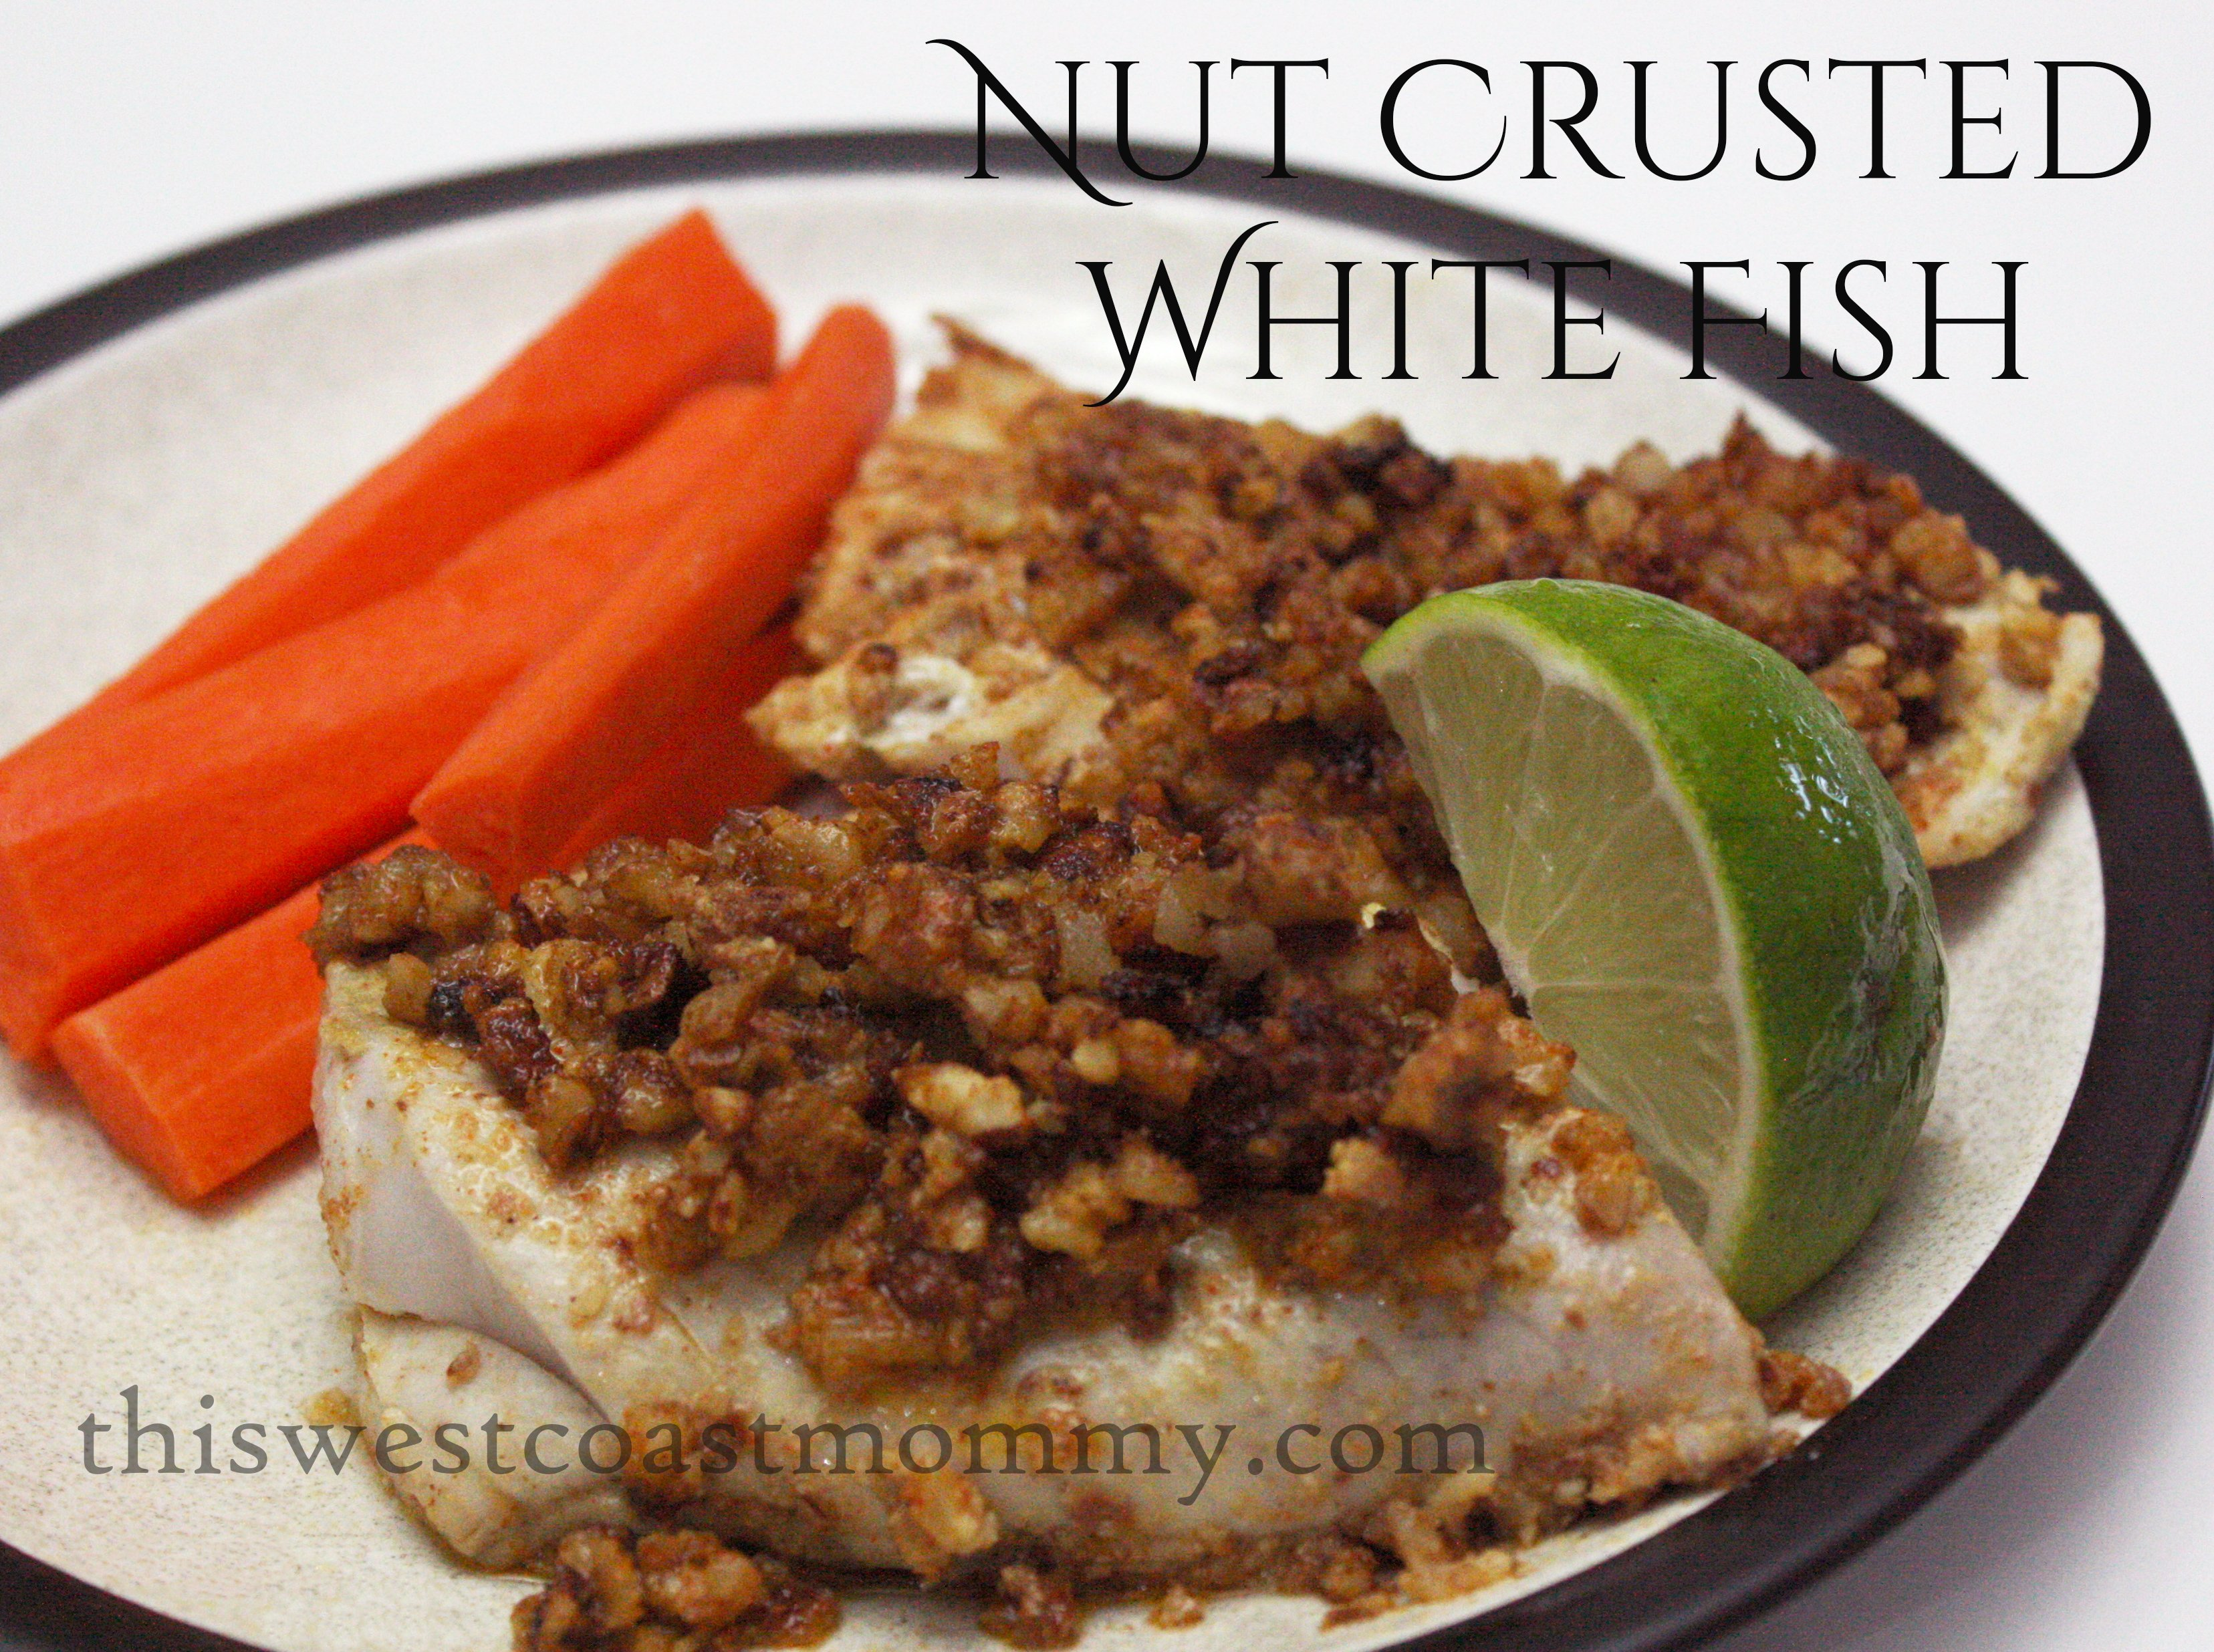 Nut crusted white fish recipe this west coast mommy for Types of white fish to eat